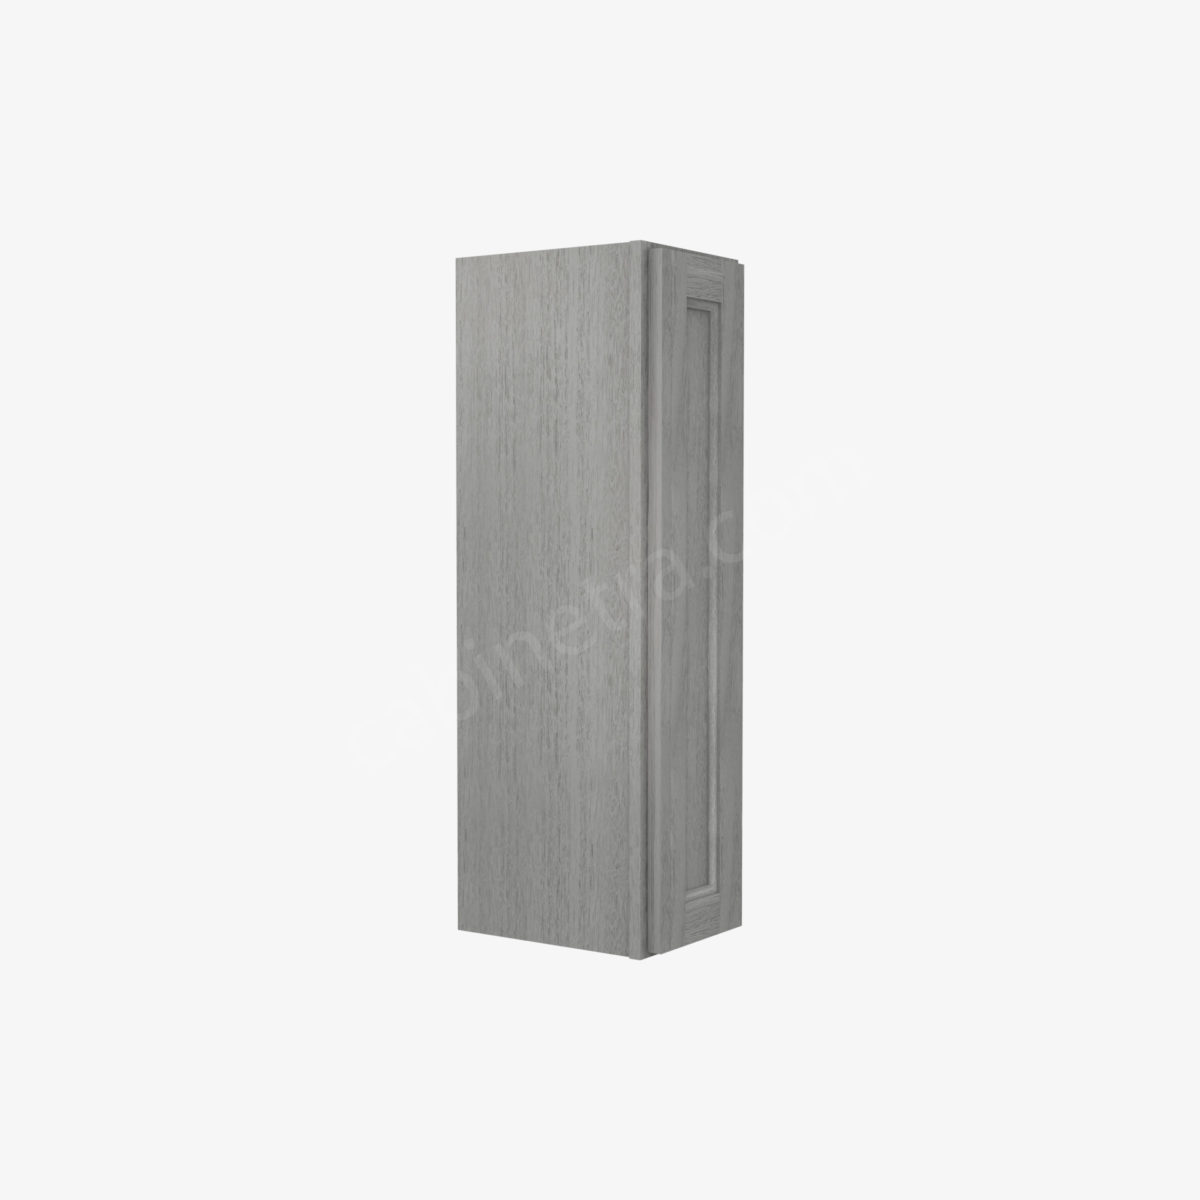 TG W0936 4 Forevermark Midtown Grey Cabinetra scaled